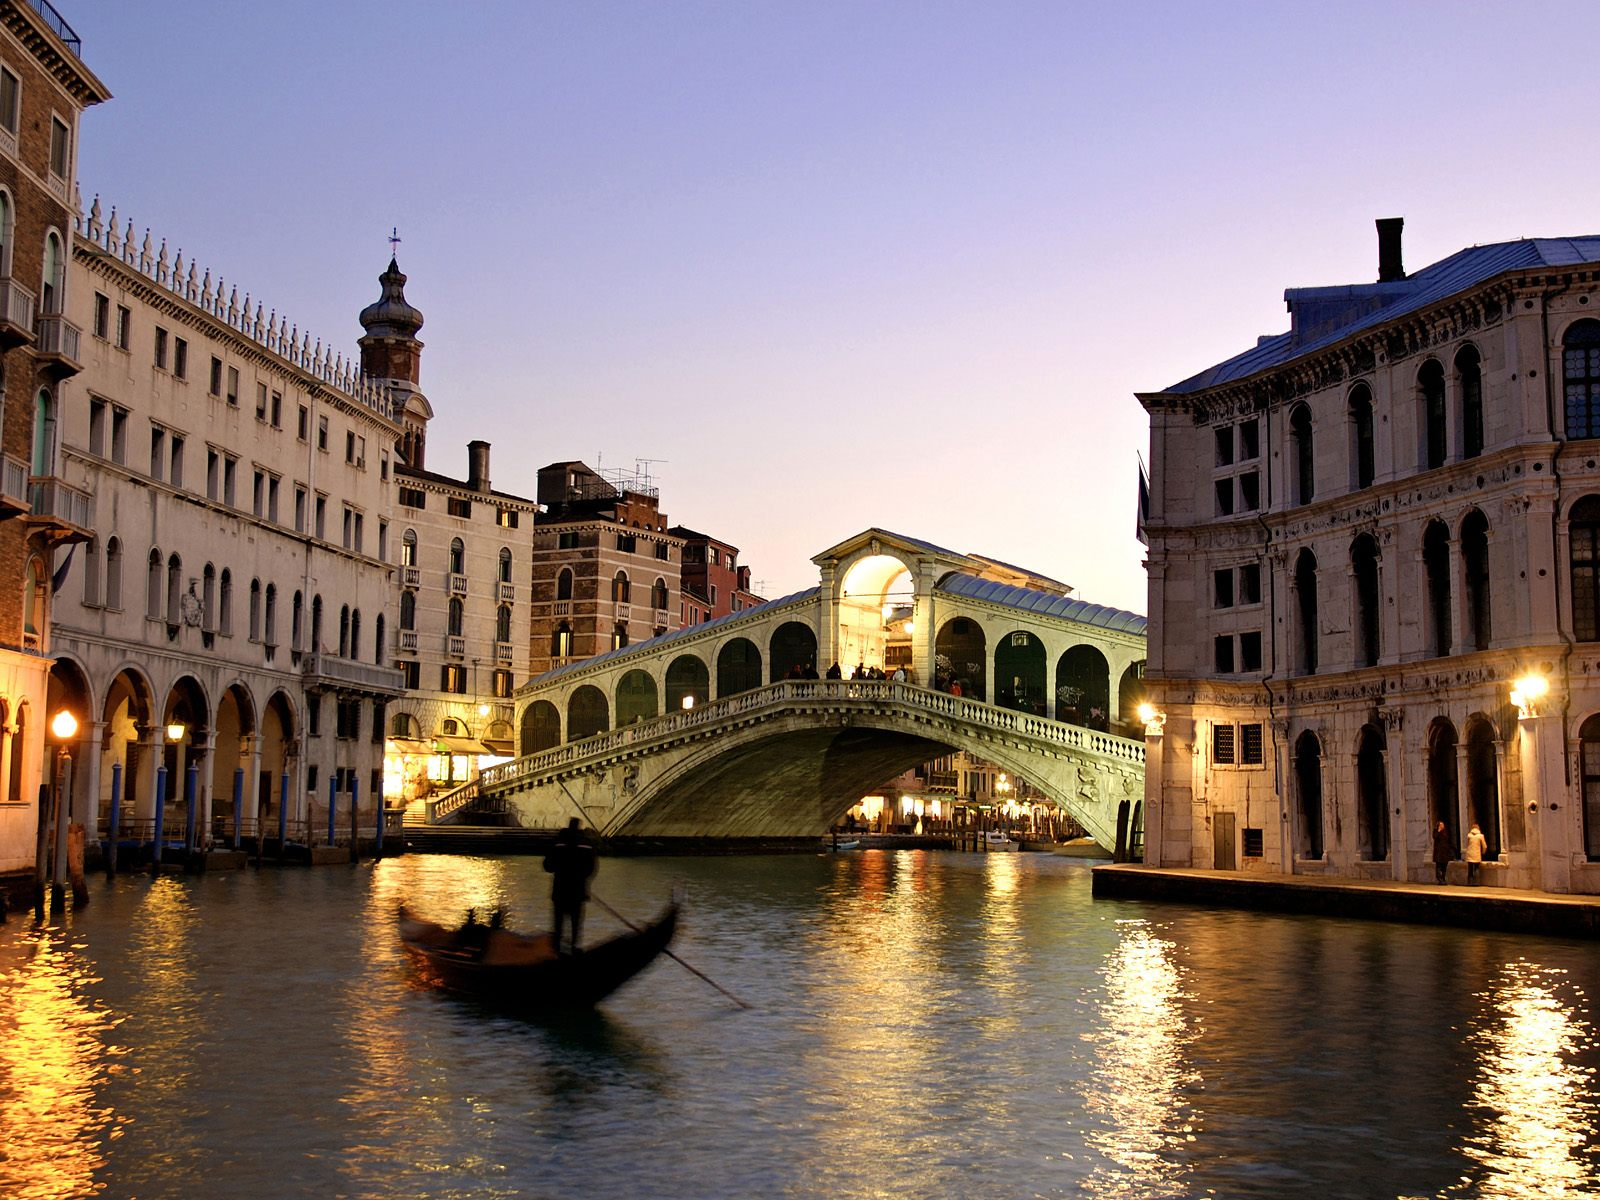 Venice Italy  City pictures : Venice Italy | HD Walls | Find Wallpapers